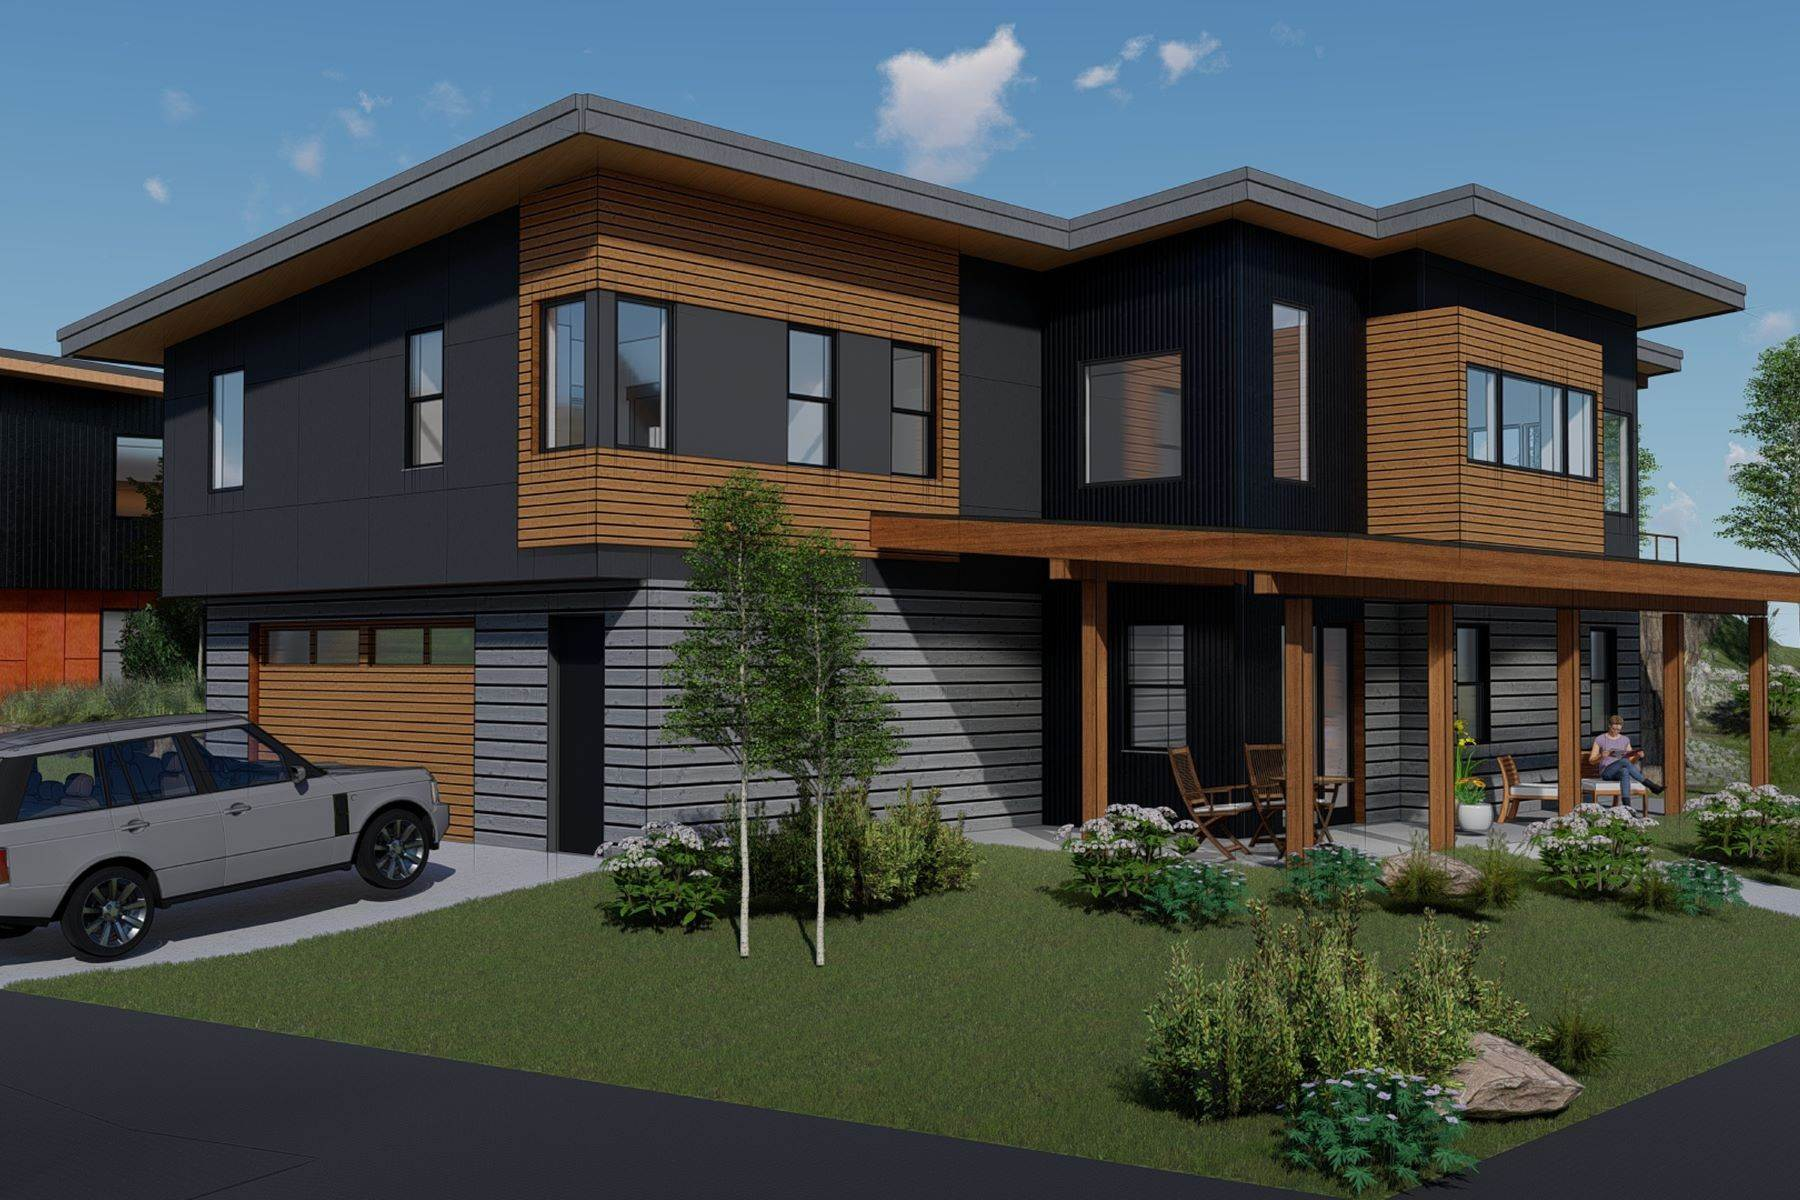 Single Family Homes for Sale at Sunlight Lot 62 1797 Sunlight Drive Steamboat Springs, Colorado 80487 United States